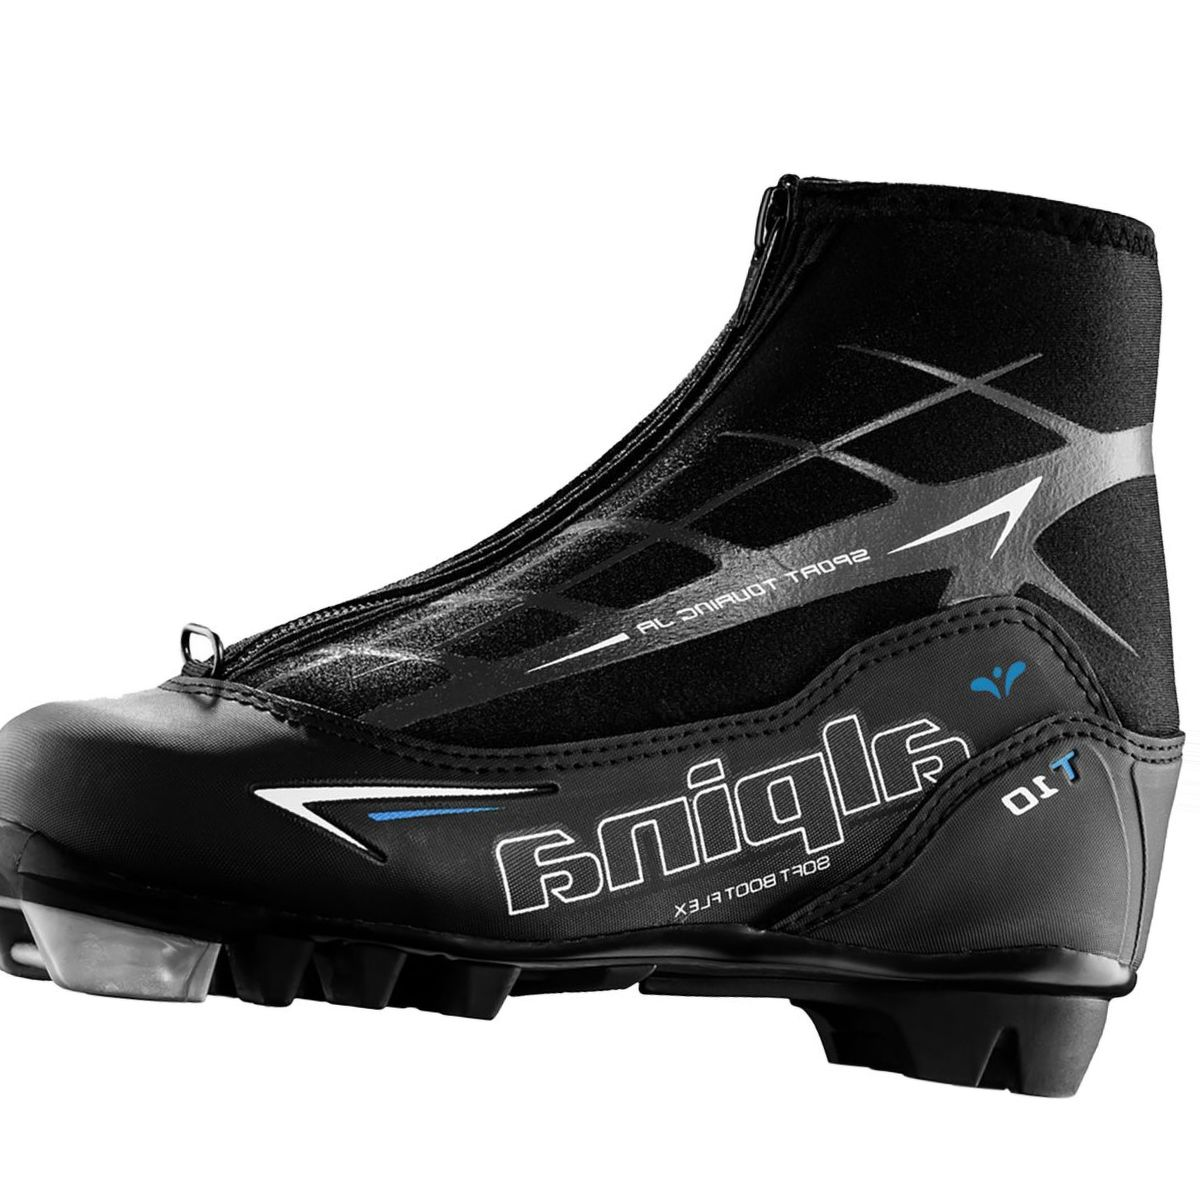 Alpina T 10 Eve Touring Boot - Women's